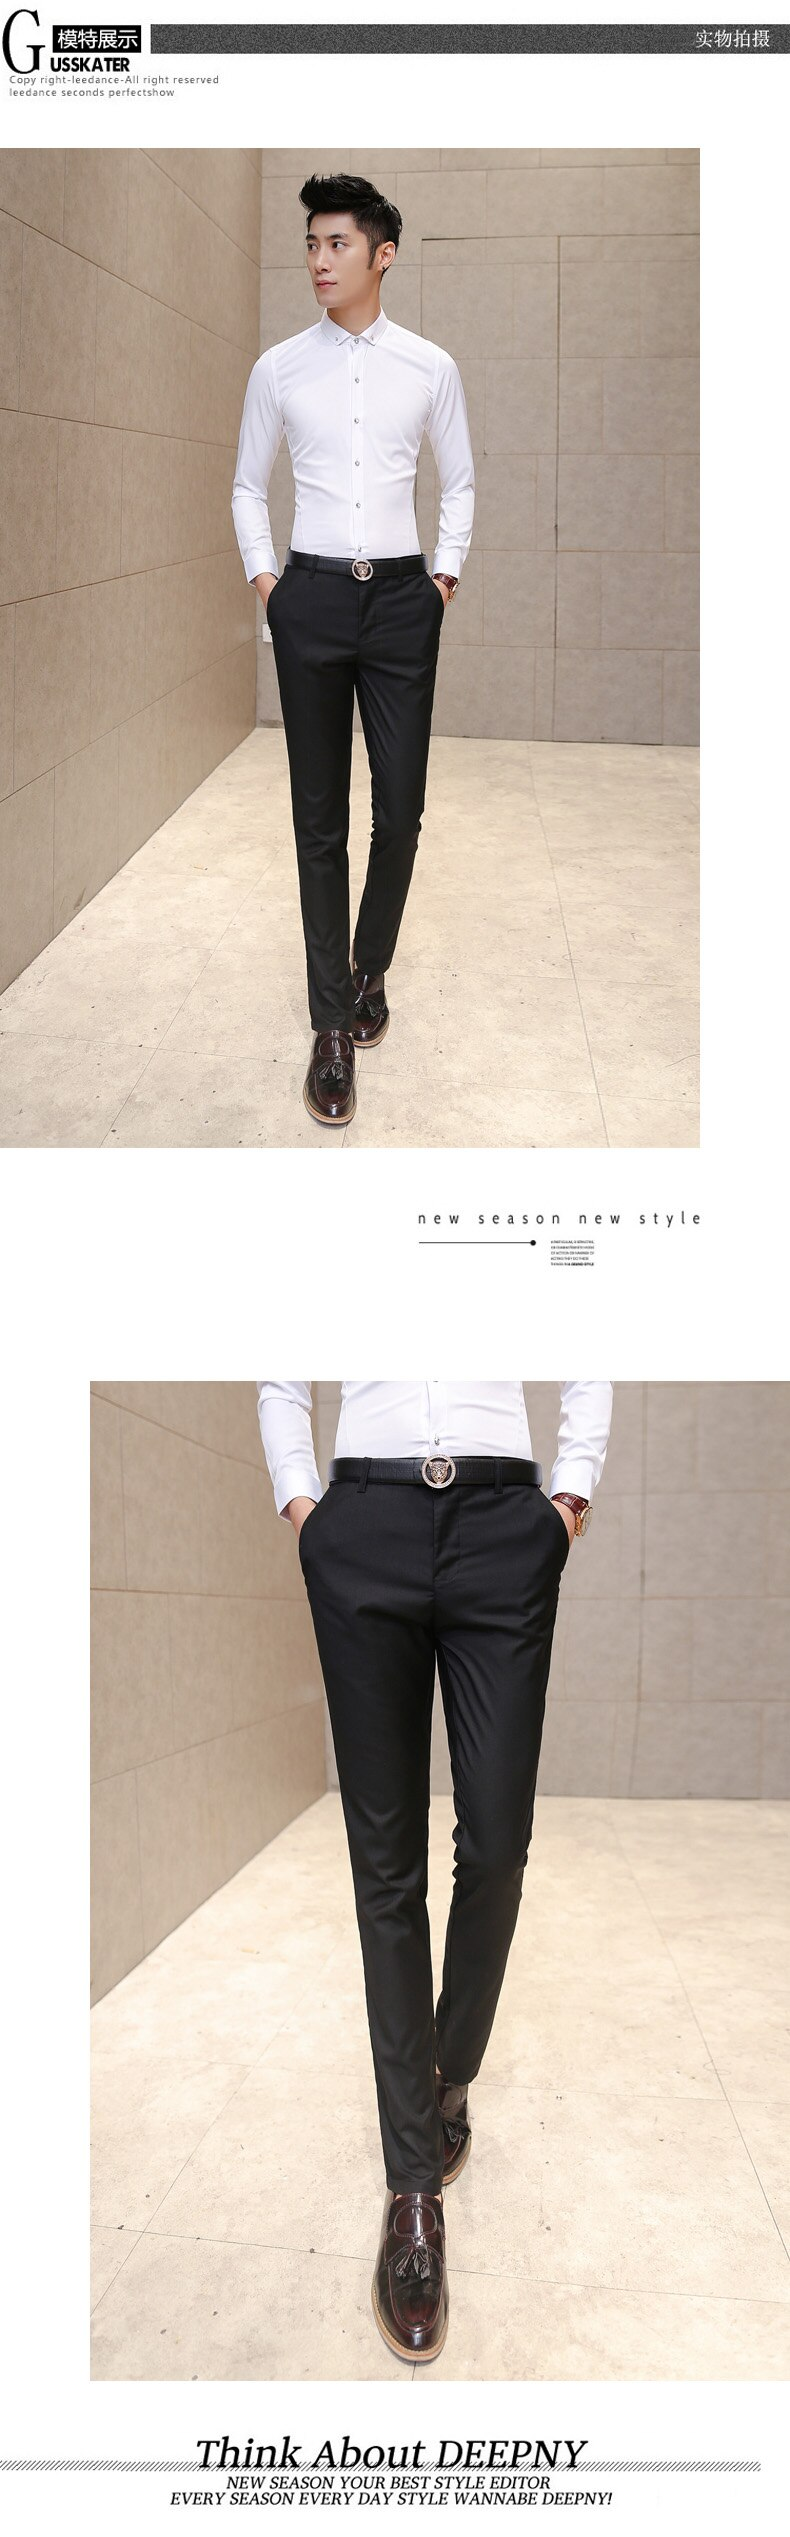 2019 Men's High-quality Business Casual Suit Pants / Men's Solid Color Slim High-end Casual Feet Pants Gentleman Style Trousers